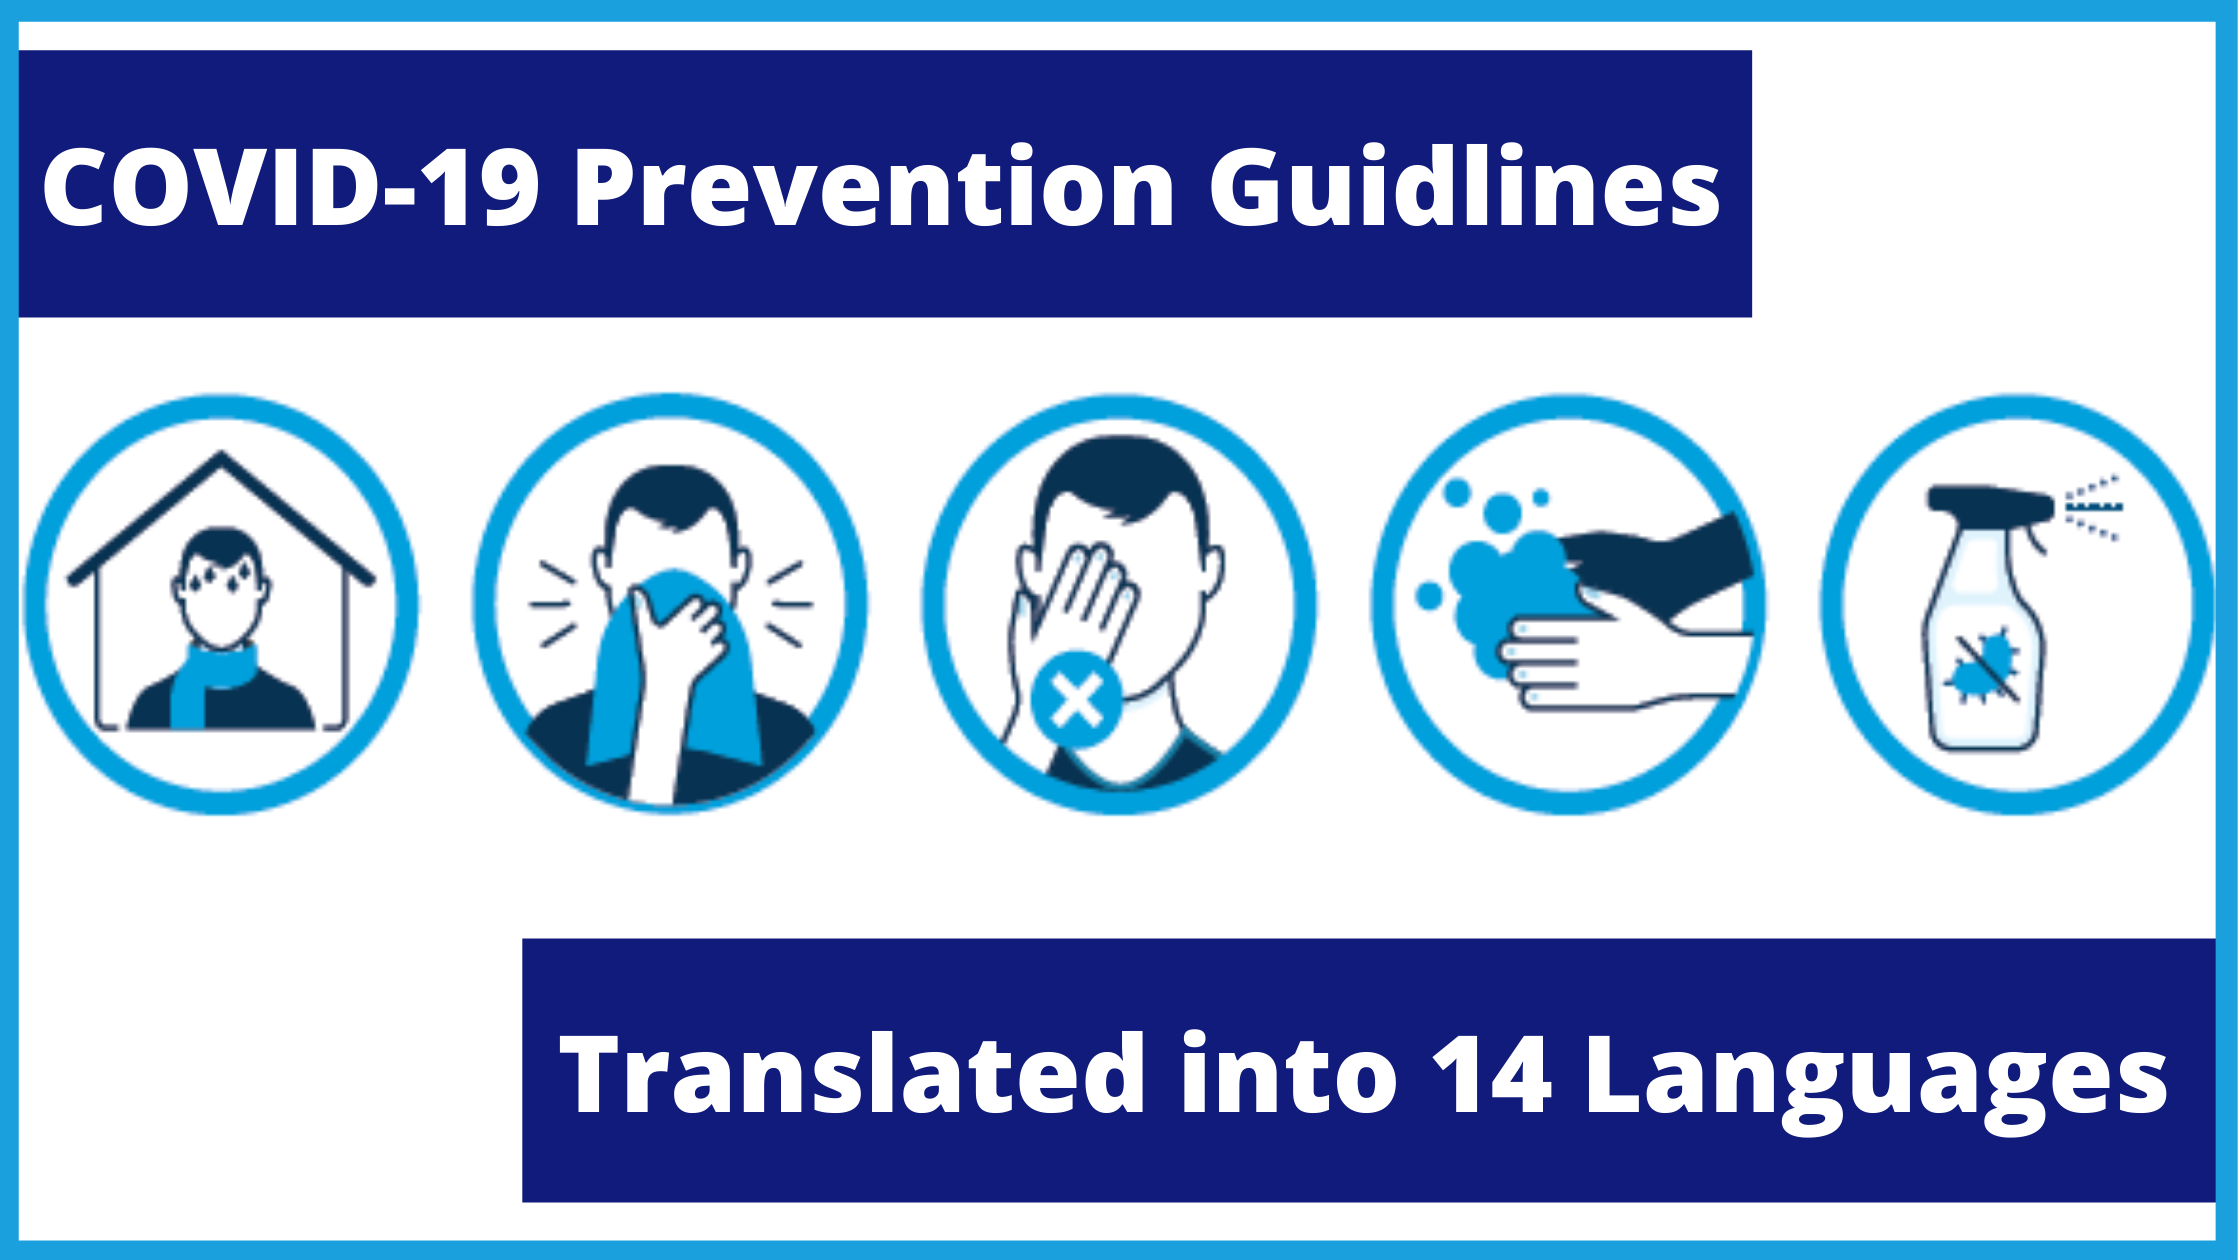 COVID-19 Prevention Guidlines (1)